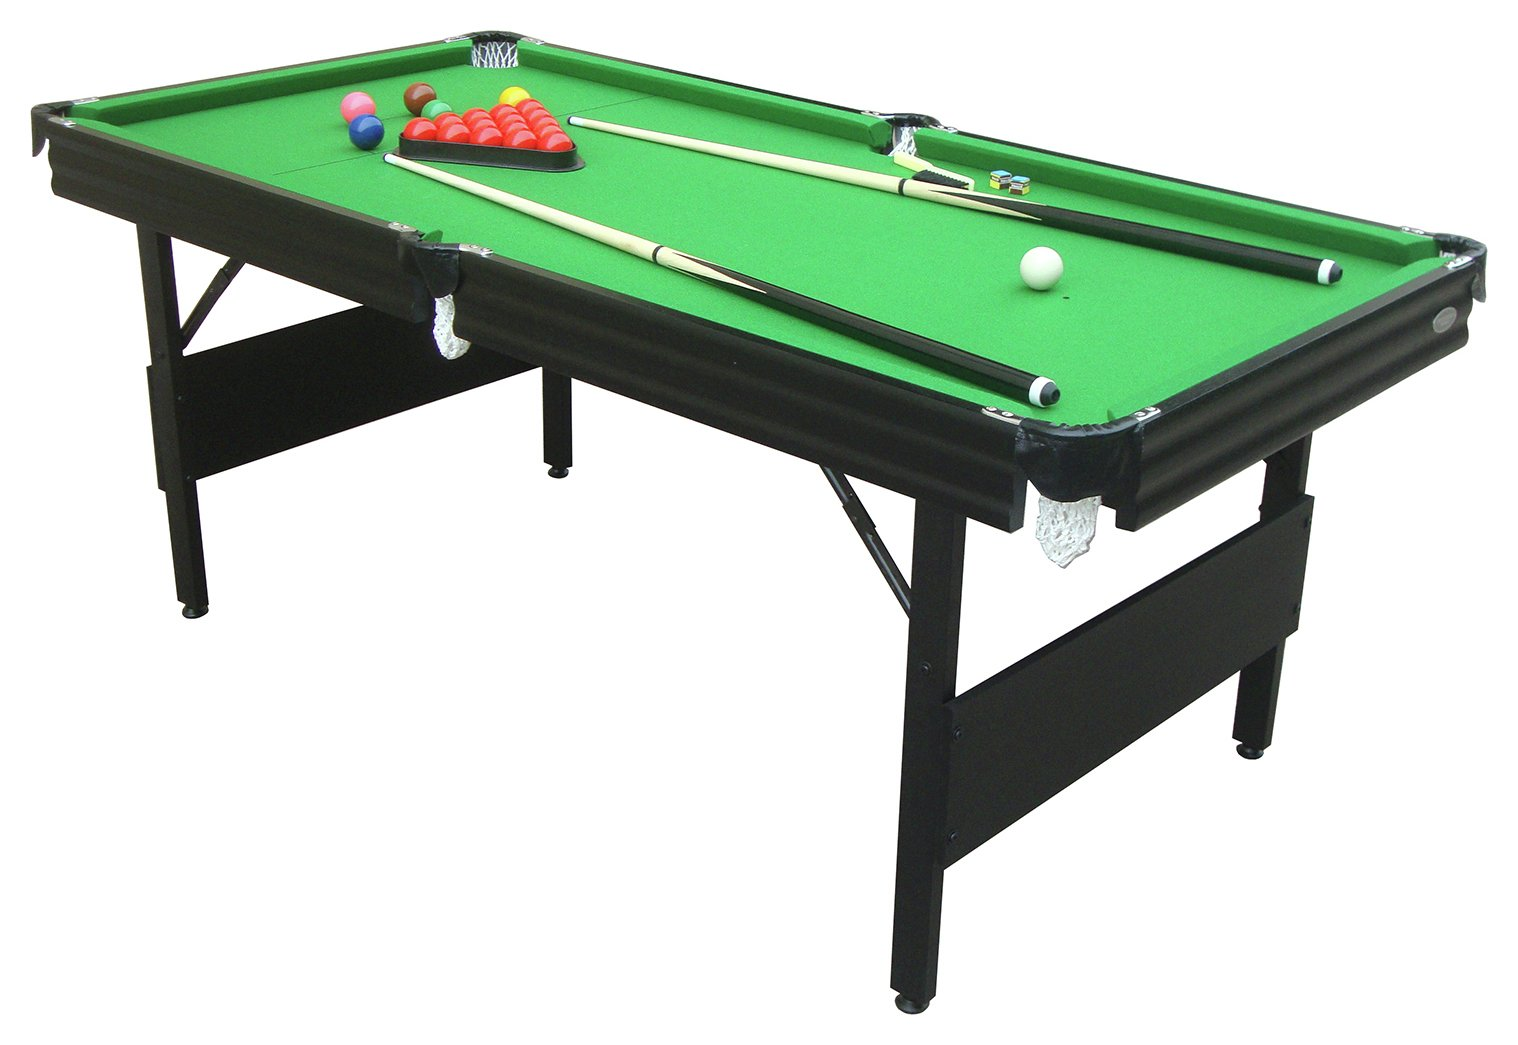 Gamesson crucible snooker table 6 ft gay times uk for Table 6 feet